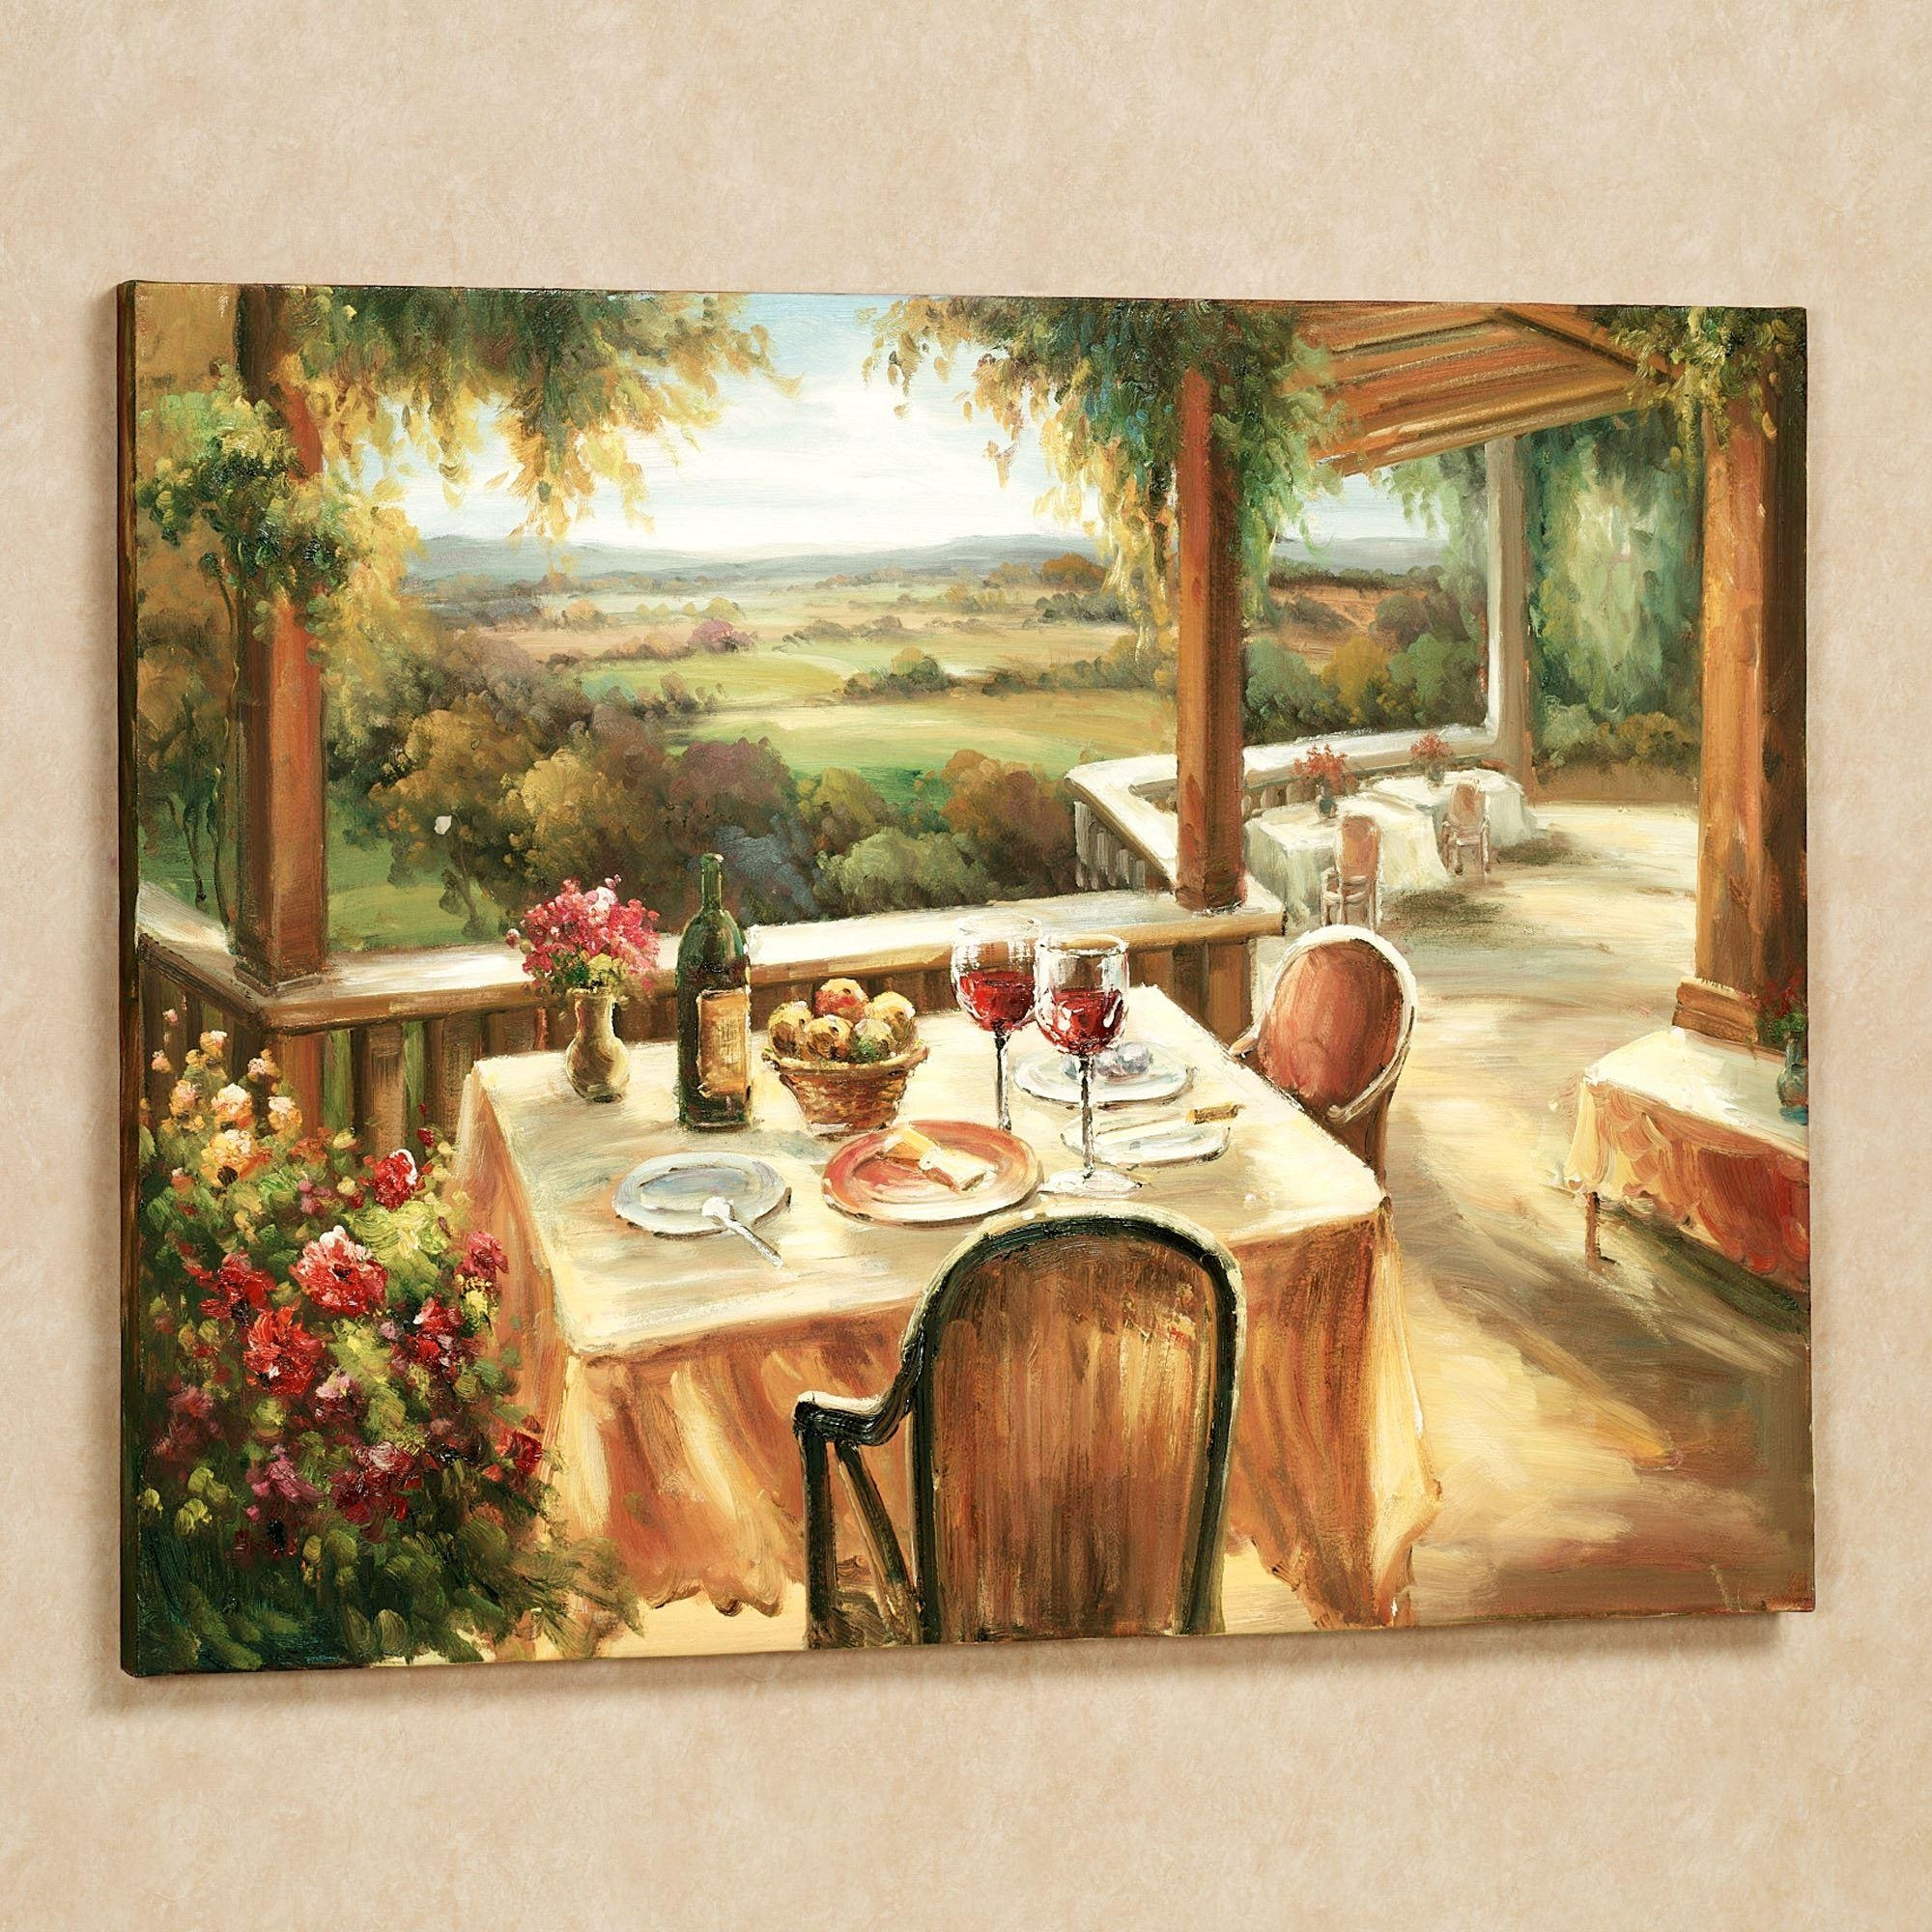 Kitchen Pictures For Wall: 20+ Choices Of Framed Italian Wall Art